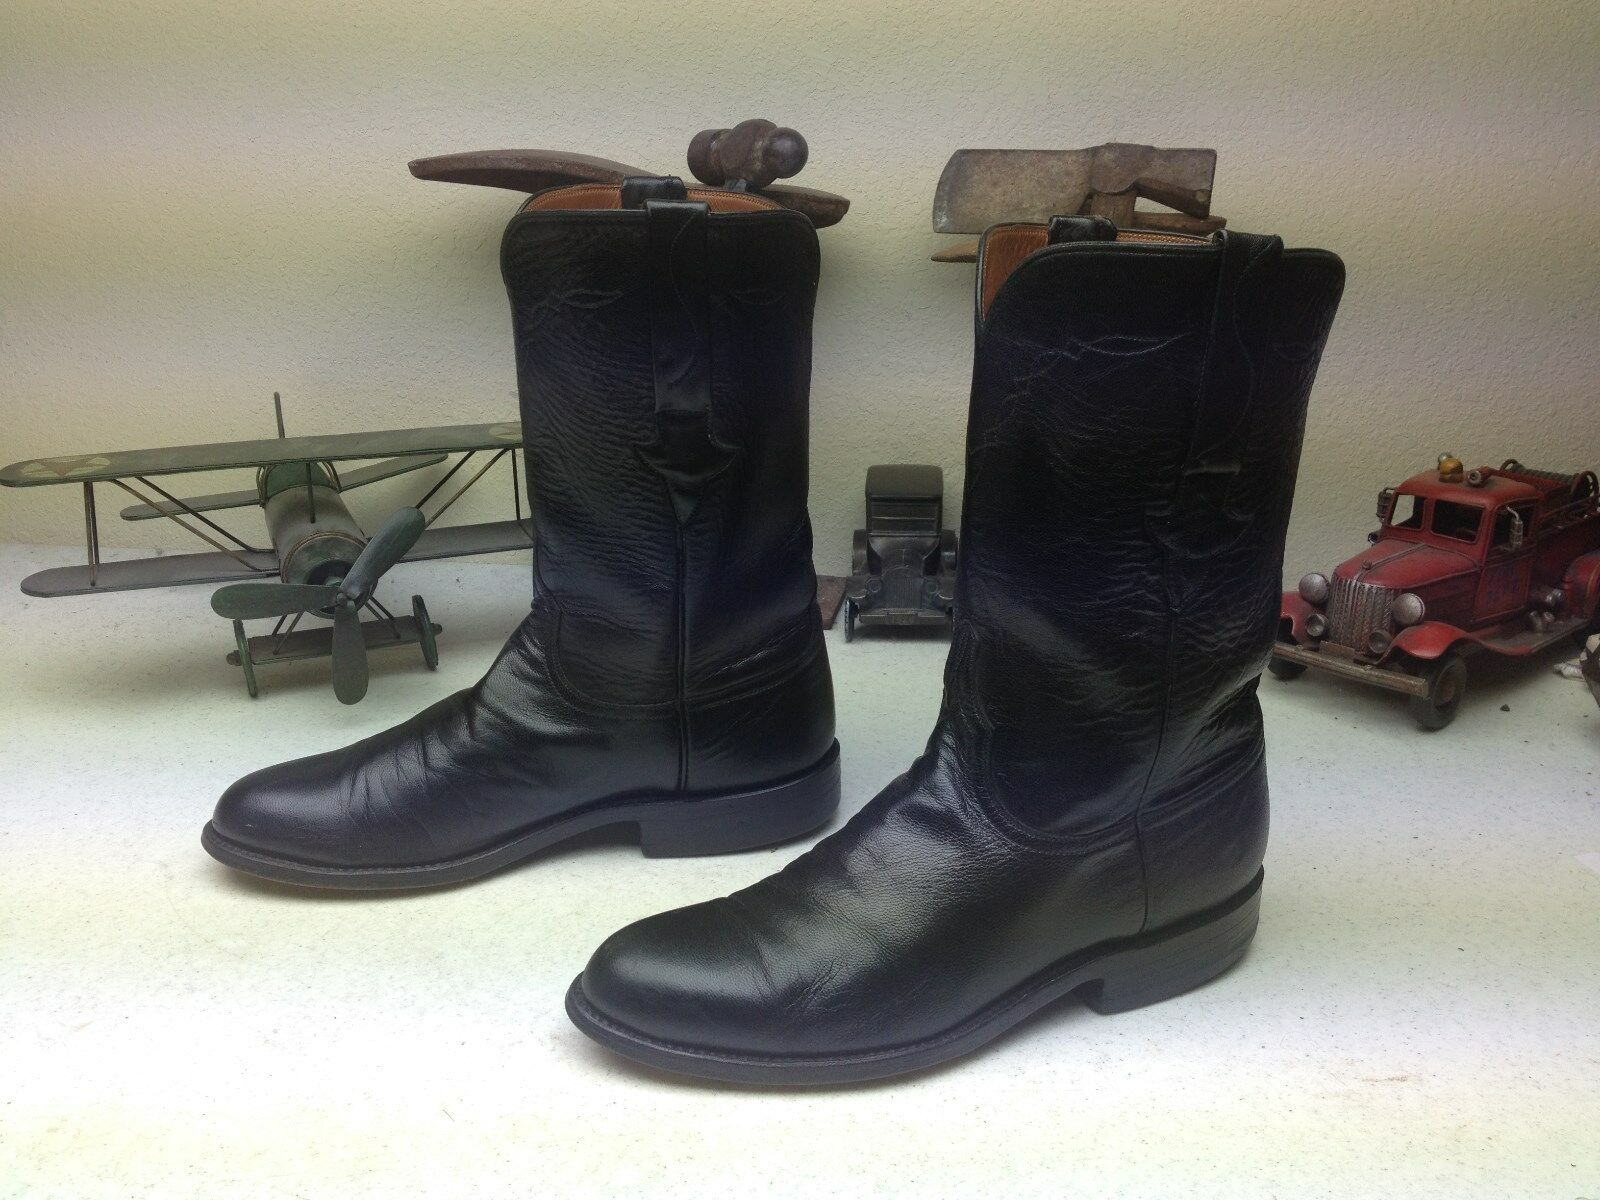 VINTAGE USA LUCCHESE BLACK LEATHER WESTERN ENGINEER TRAIL BOSS BOOTS SIZE 7.5 D